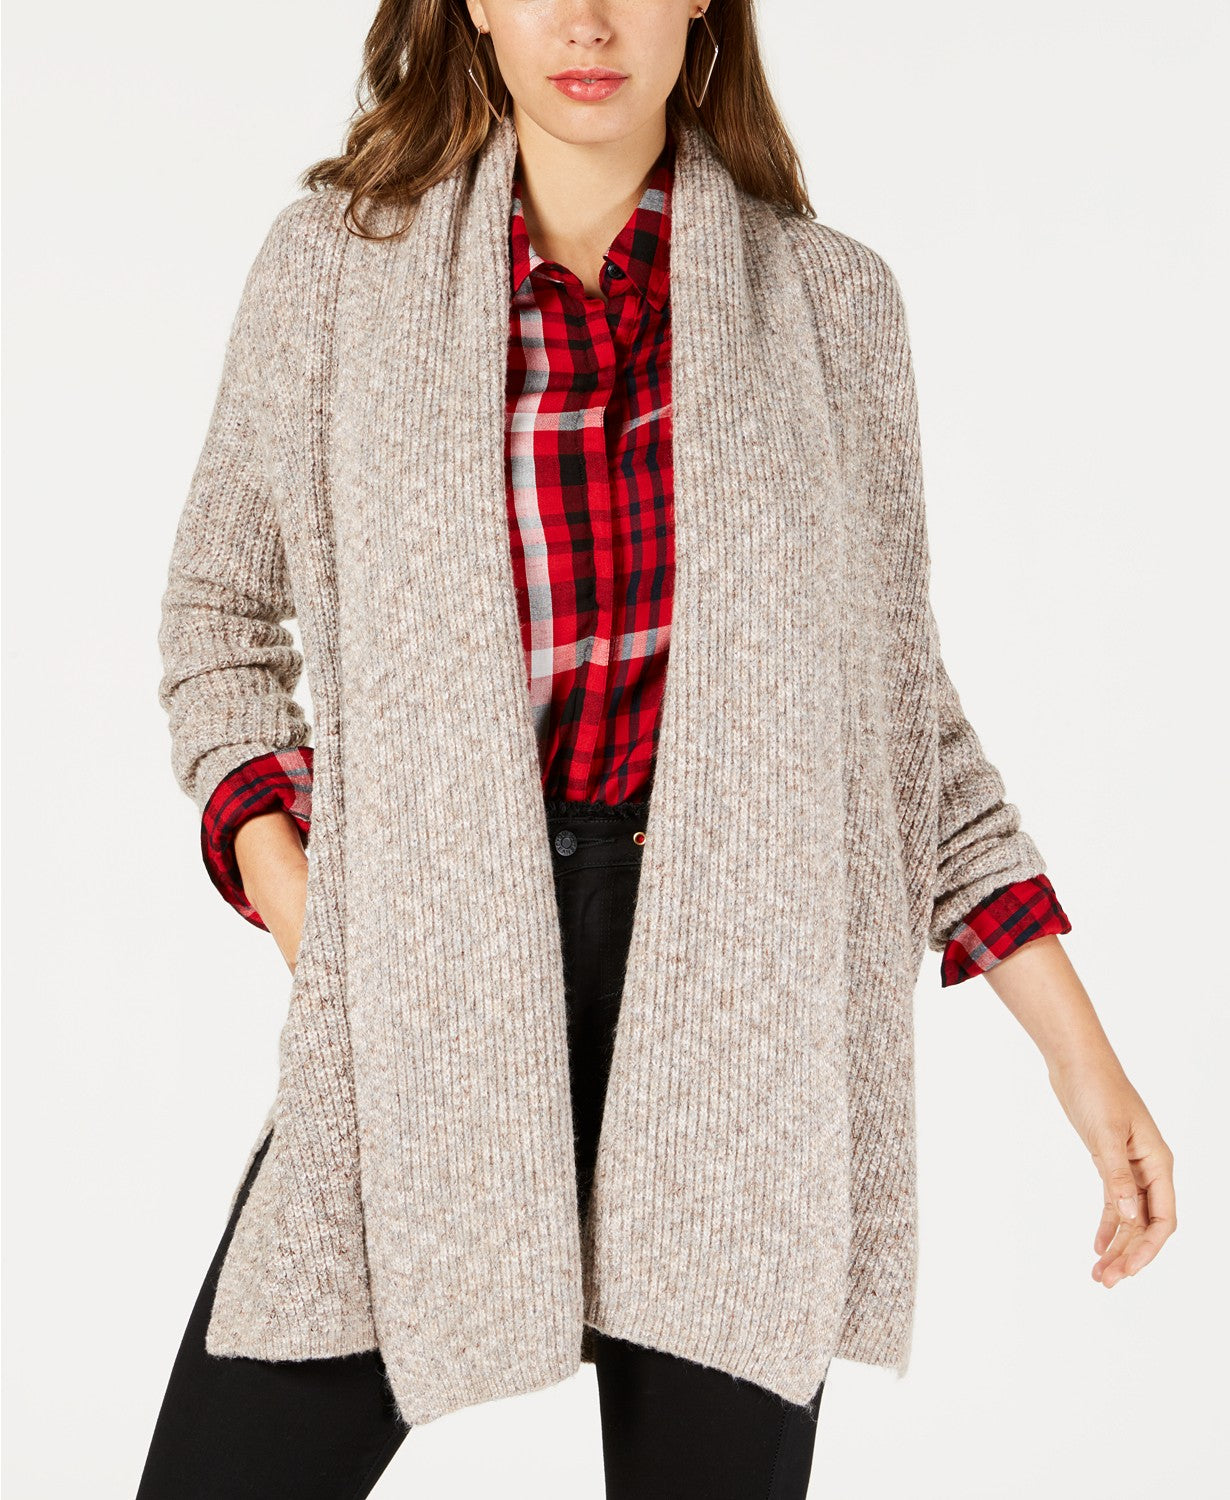 GUESS Women's Draped Open-Front Cardigan Sweater Rose Smoke Heather Multi M